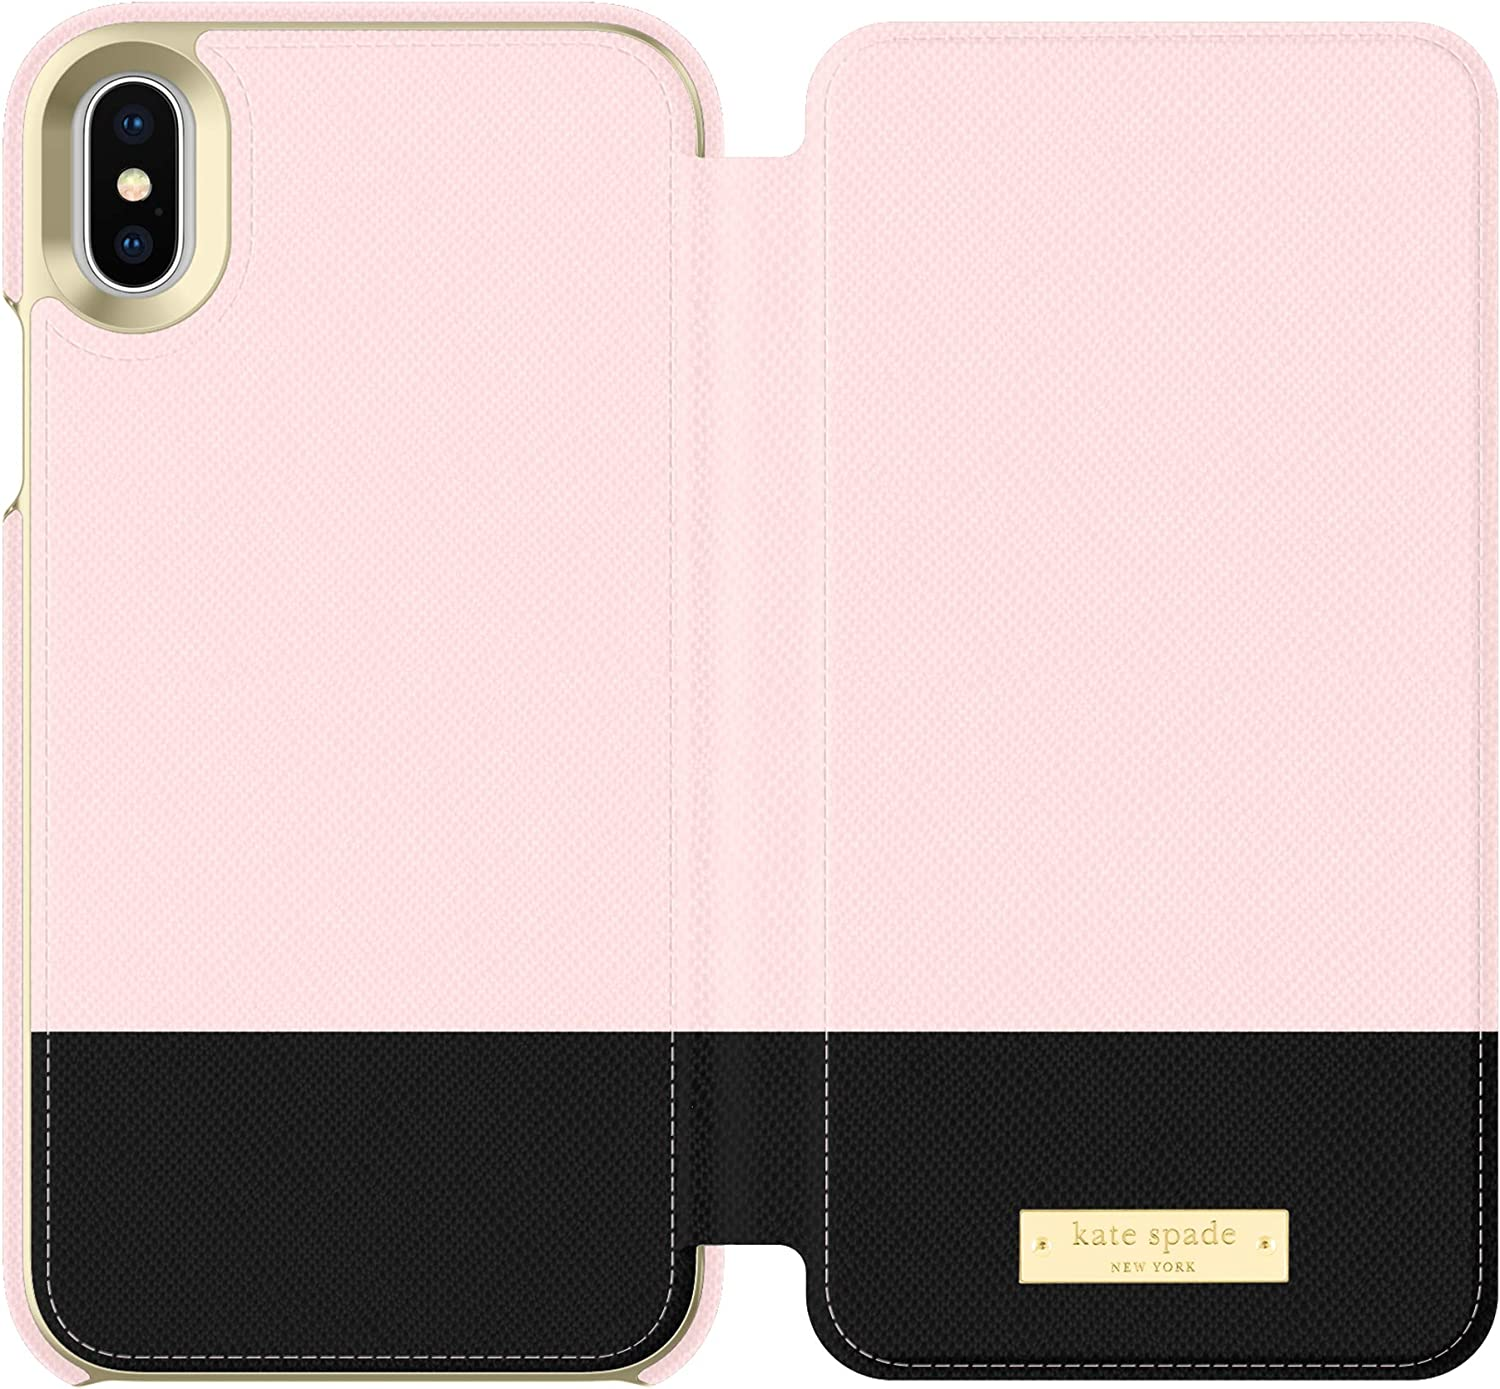 kate spade new york Rose Quartz/Black Color Block Folio Case for iPhone X/XS - Saffiano Leather ID & Card Holder, KSIPH-083-CBRQB